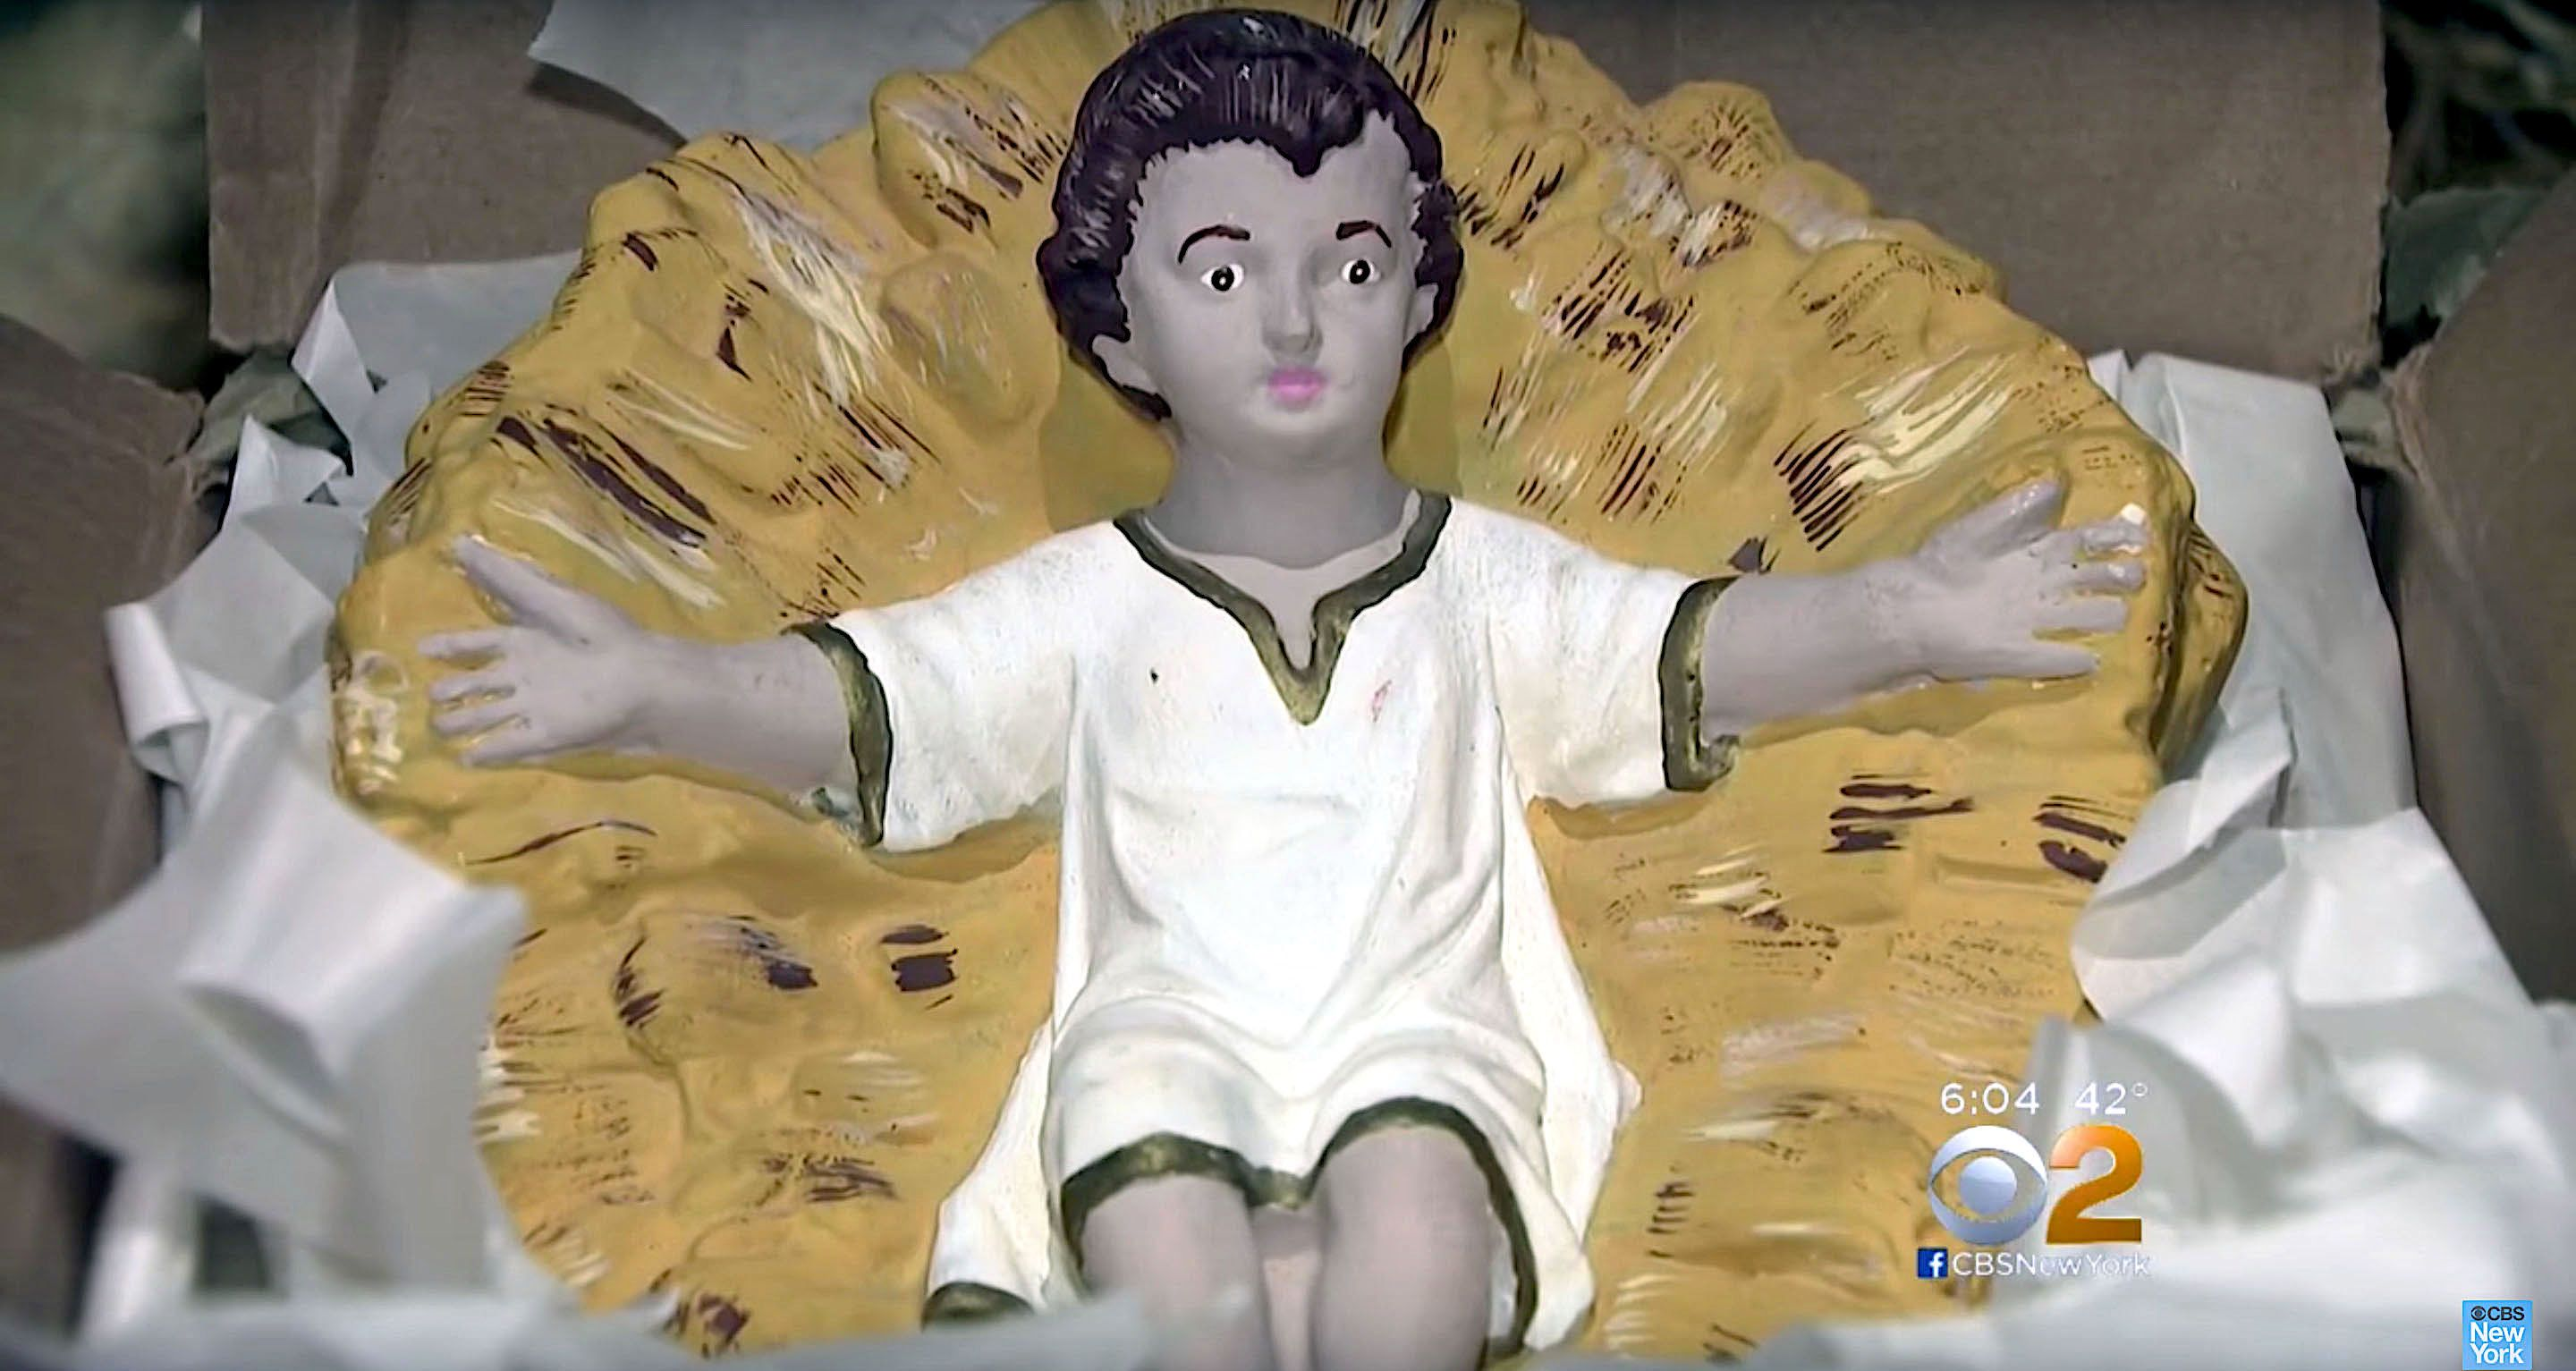 Baby Jesus statue is returned to church in Hoboken, New Jersey, more than 80 years after it was stolen.